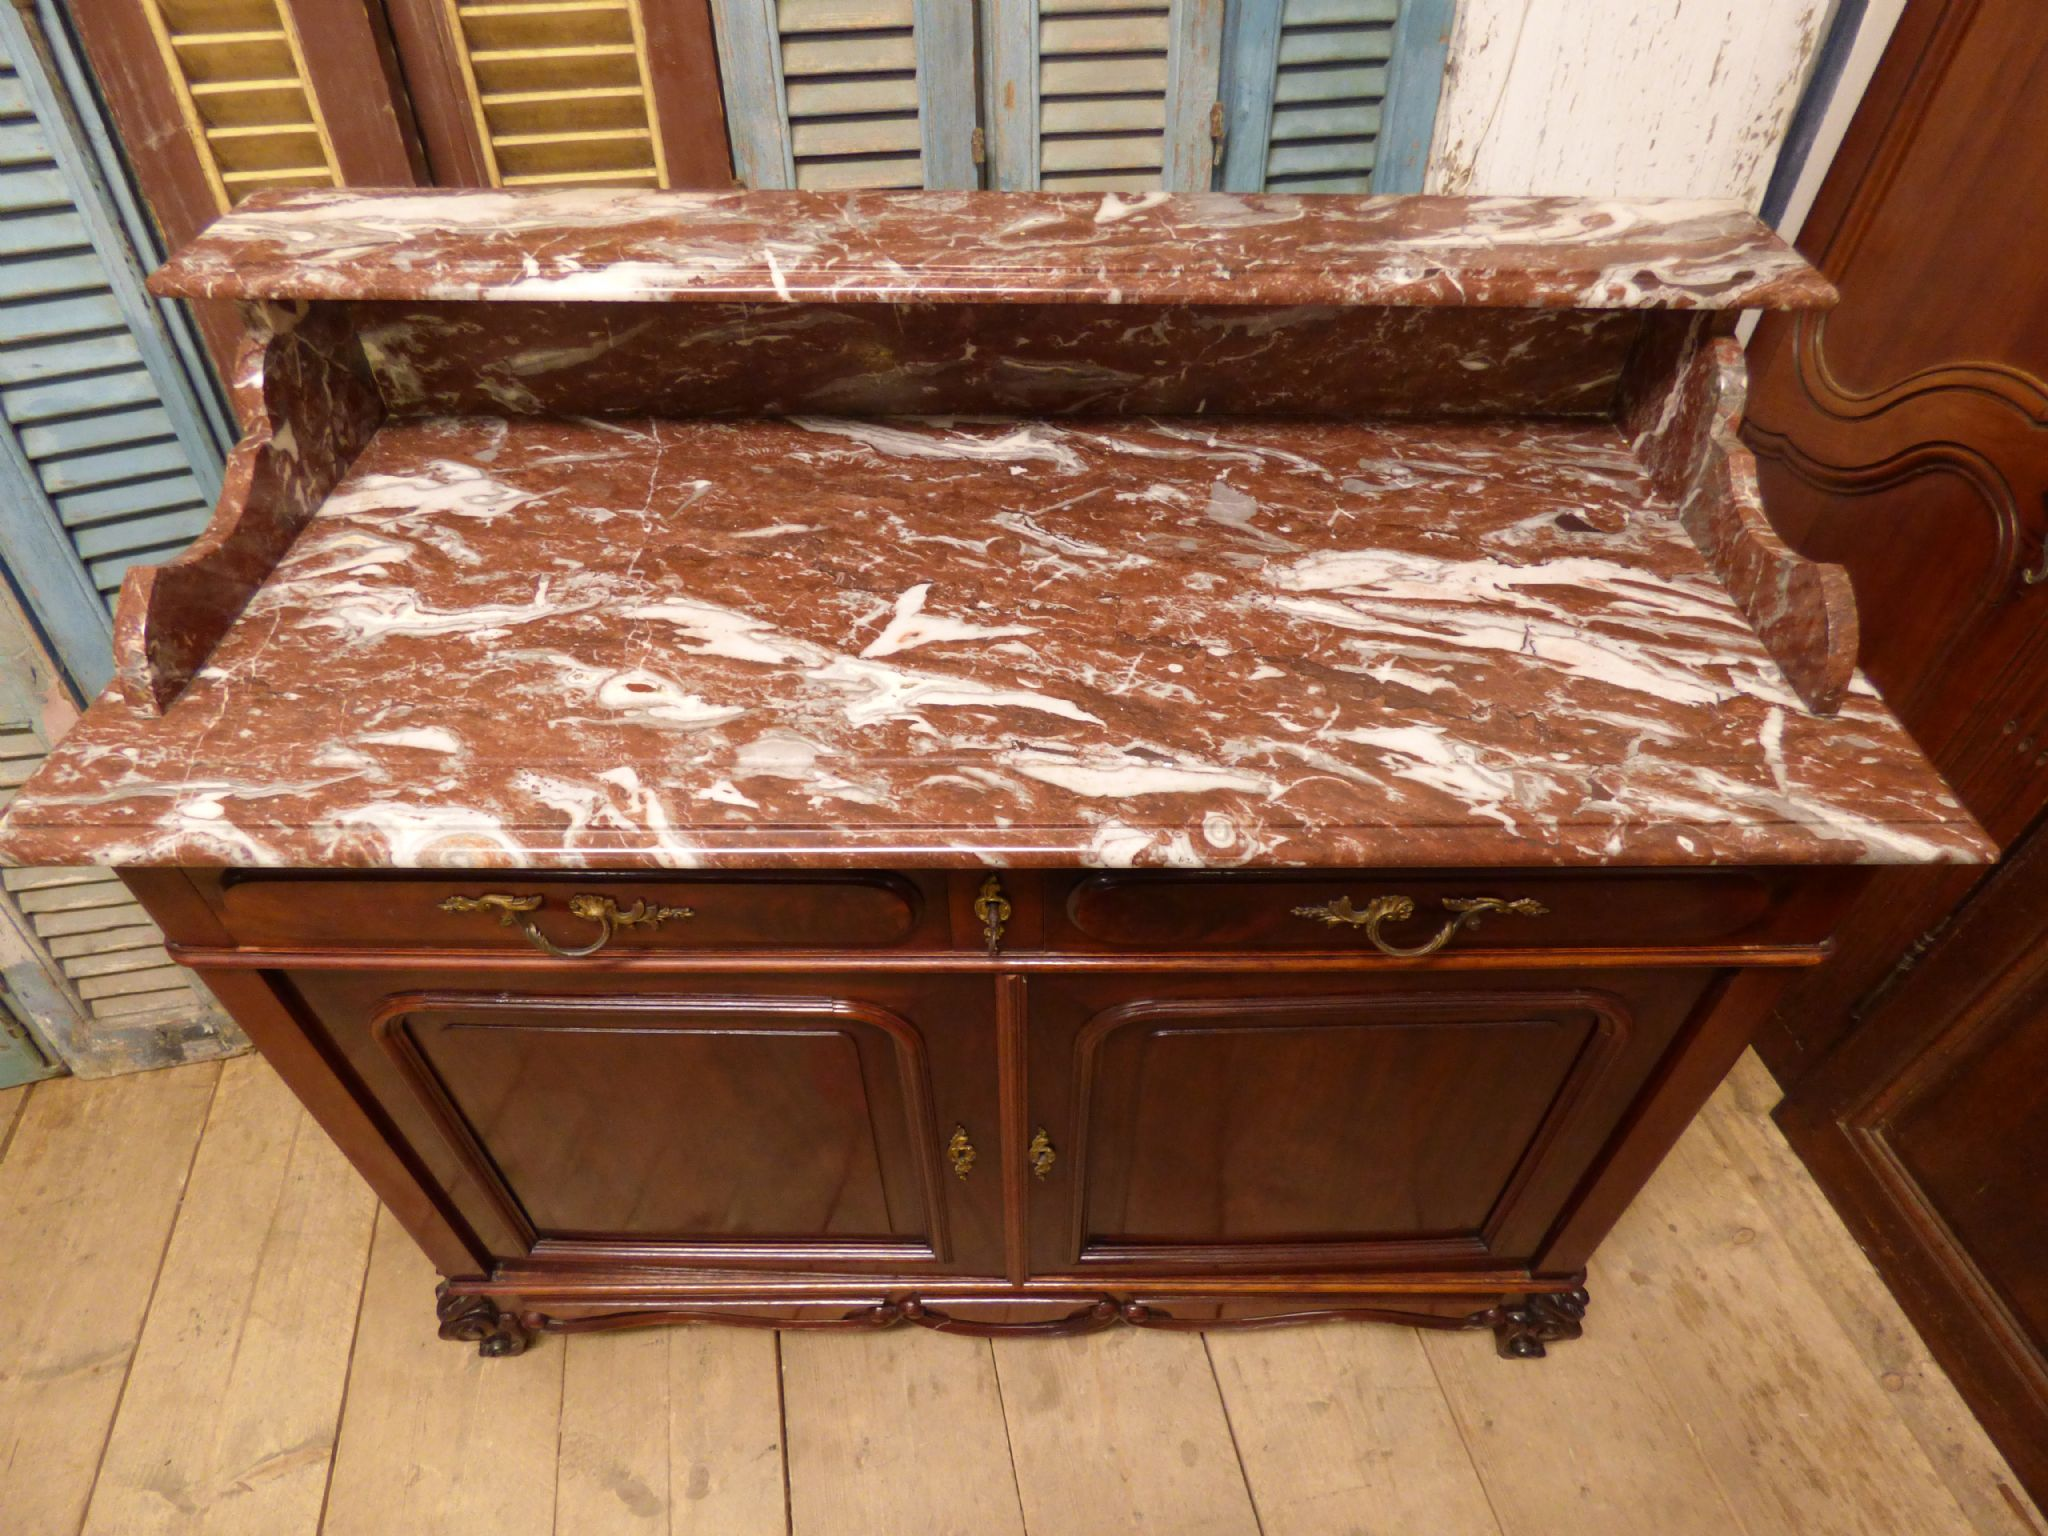 Furniture moreover Antique Marble Top Wash Stand Ca16 813 P together with Somsadesign blogspot additionally Sillas  edor together with 46th Annual Meridian Ball. on french chairs